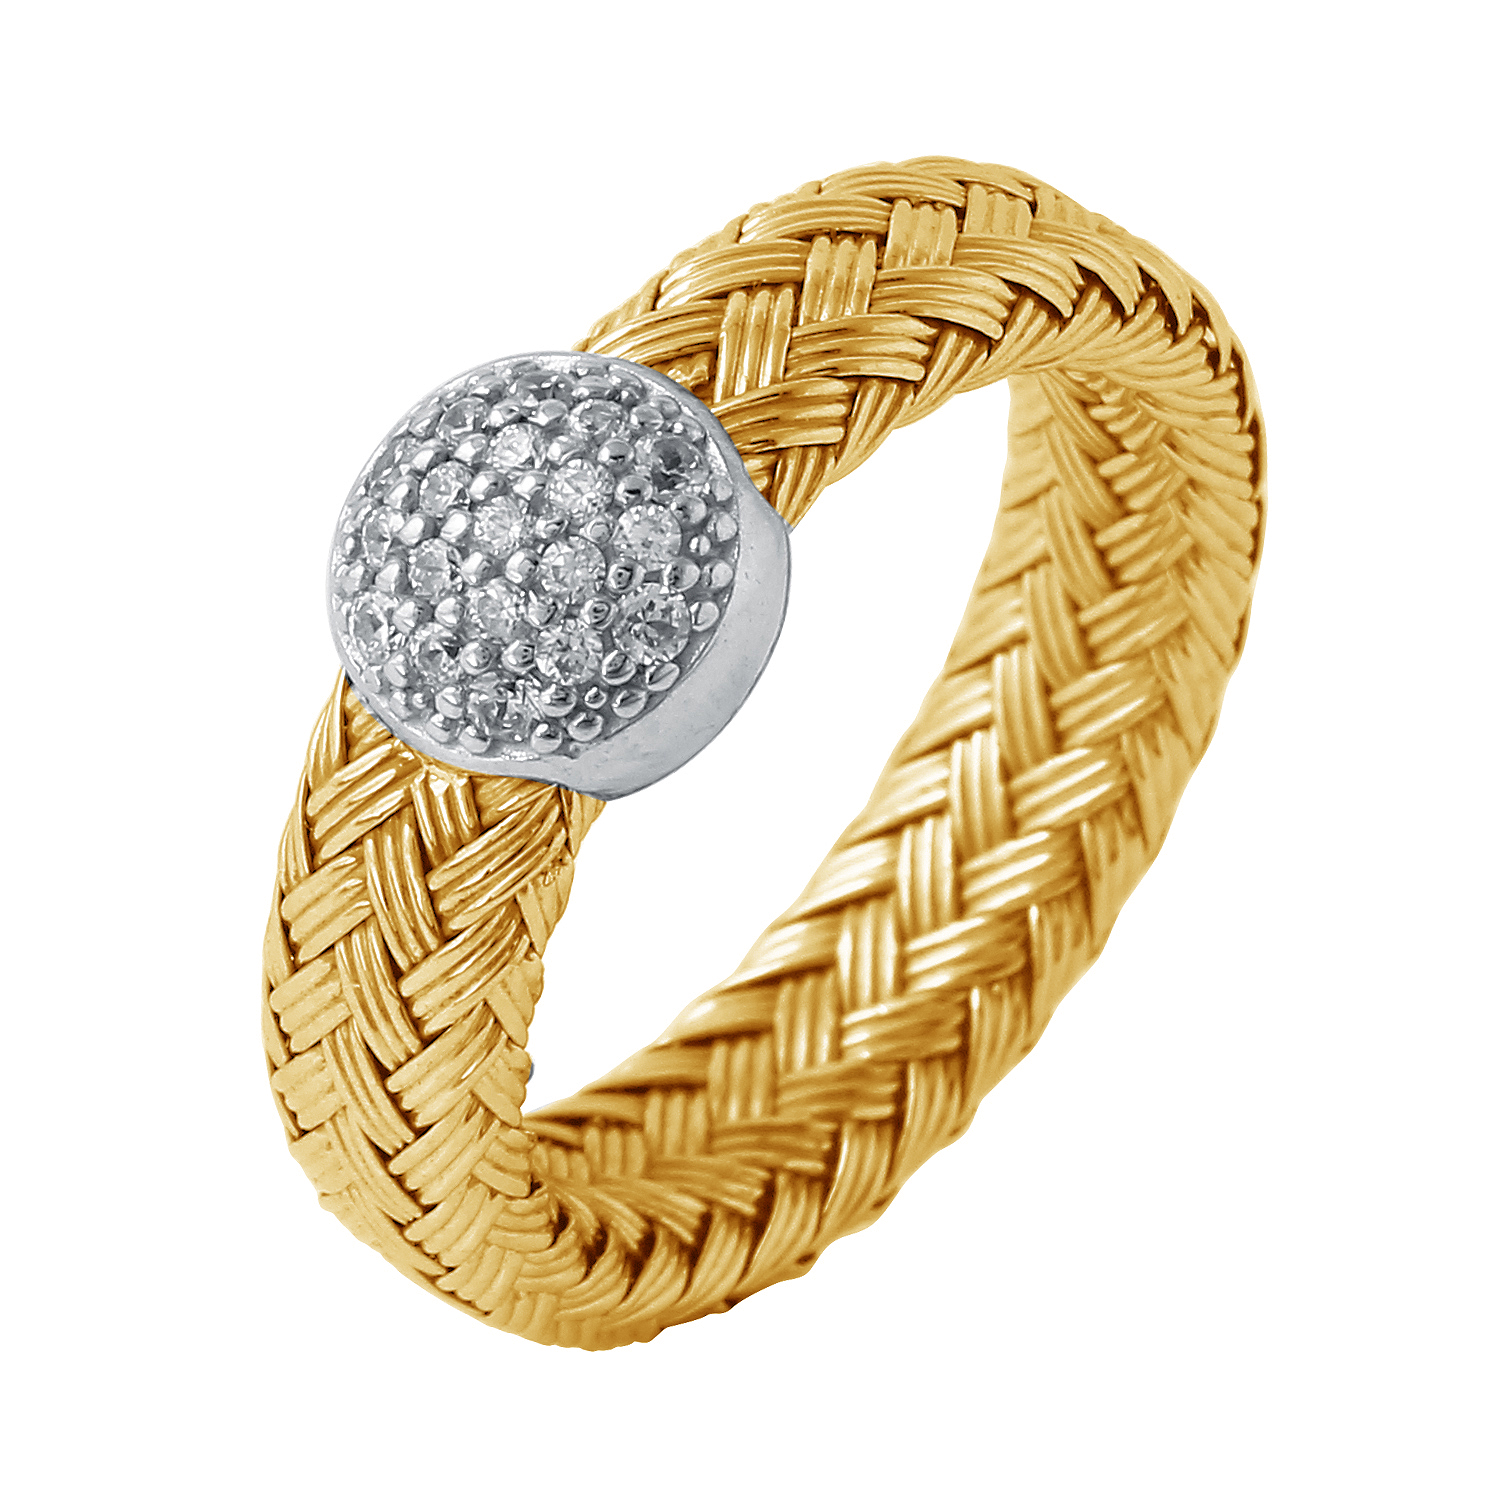 CHARLES GARNIER - Sterling Silver and CZ Ring